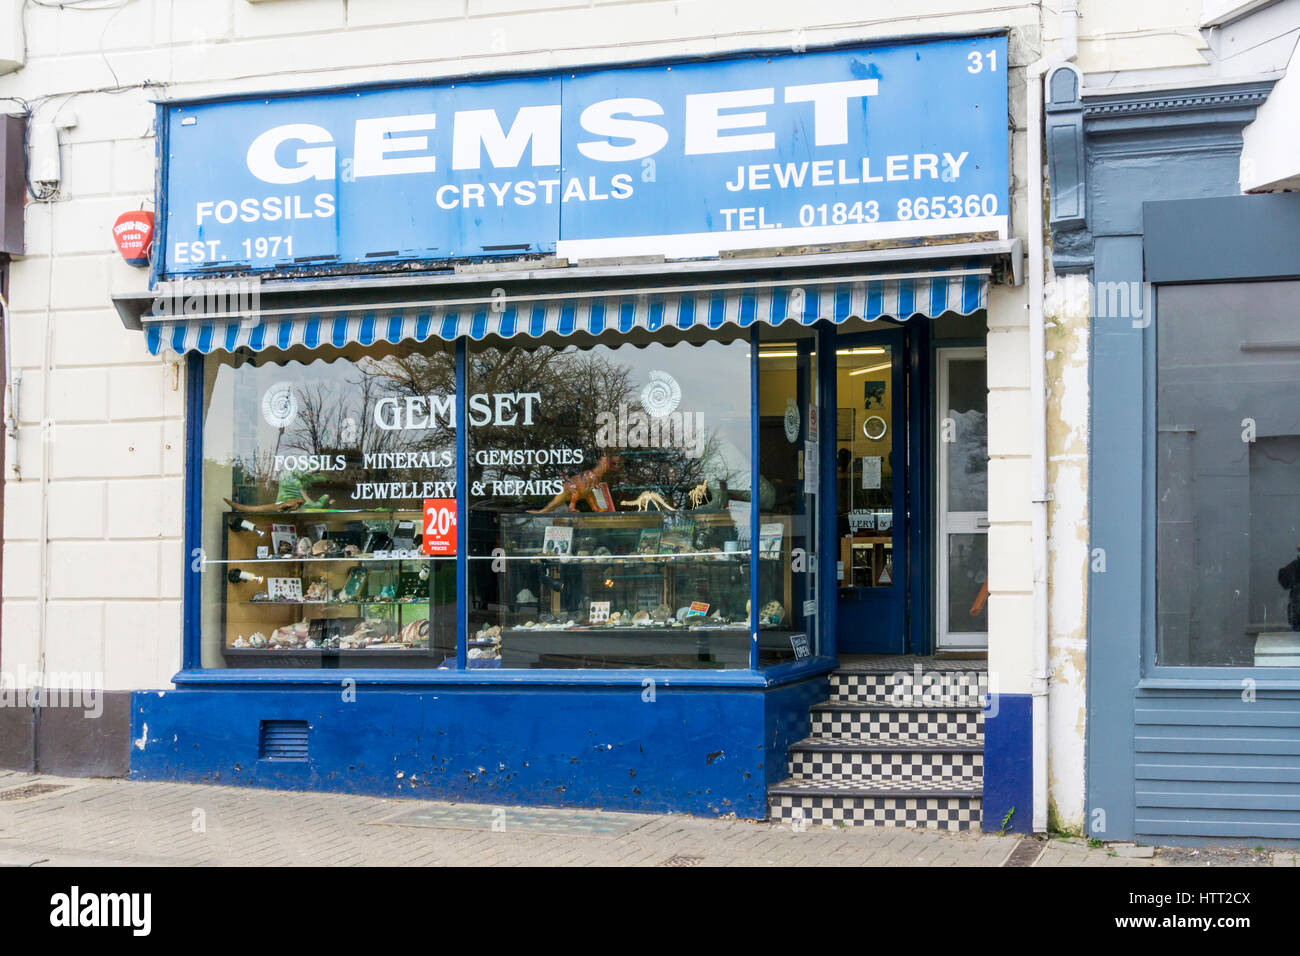 Gemset fossil and minerals shop in Broadstairs, Kent. - Stock Image